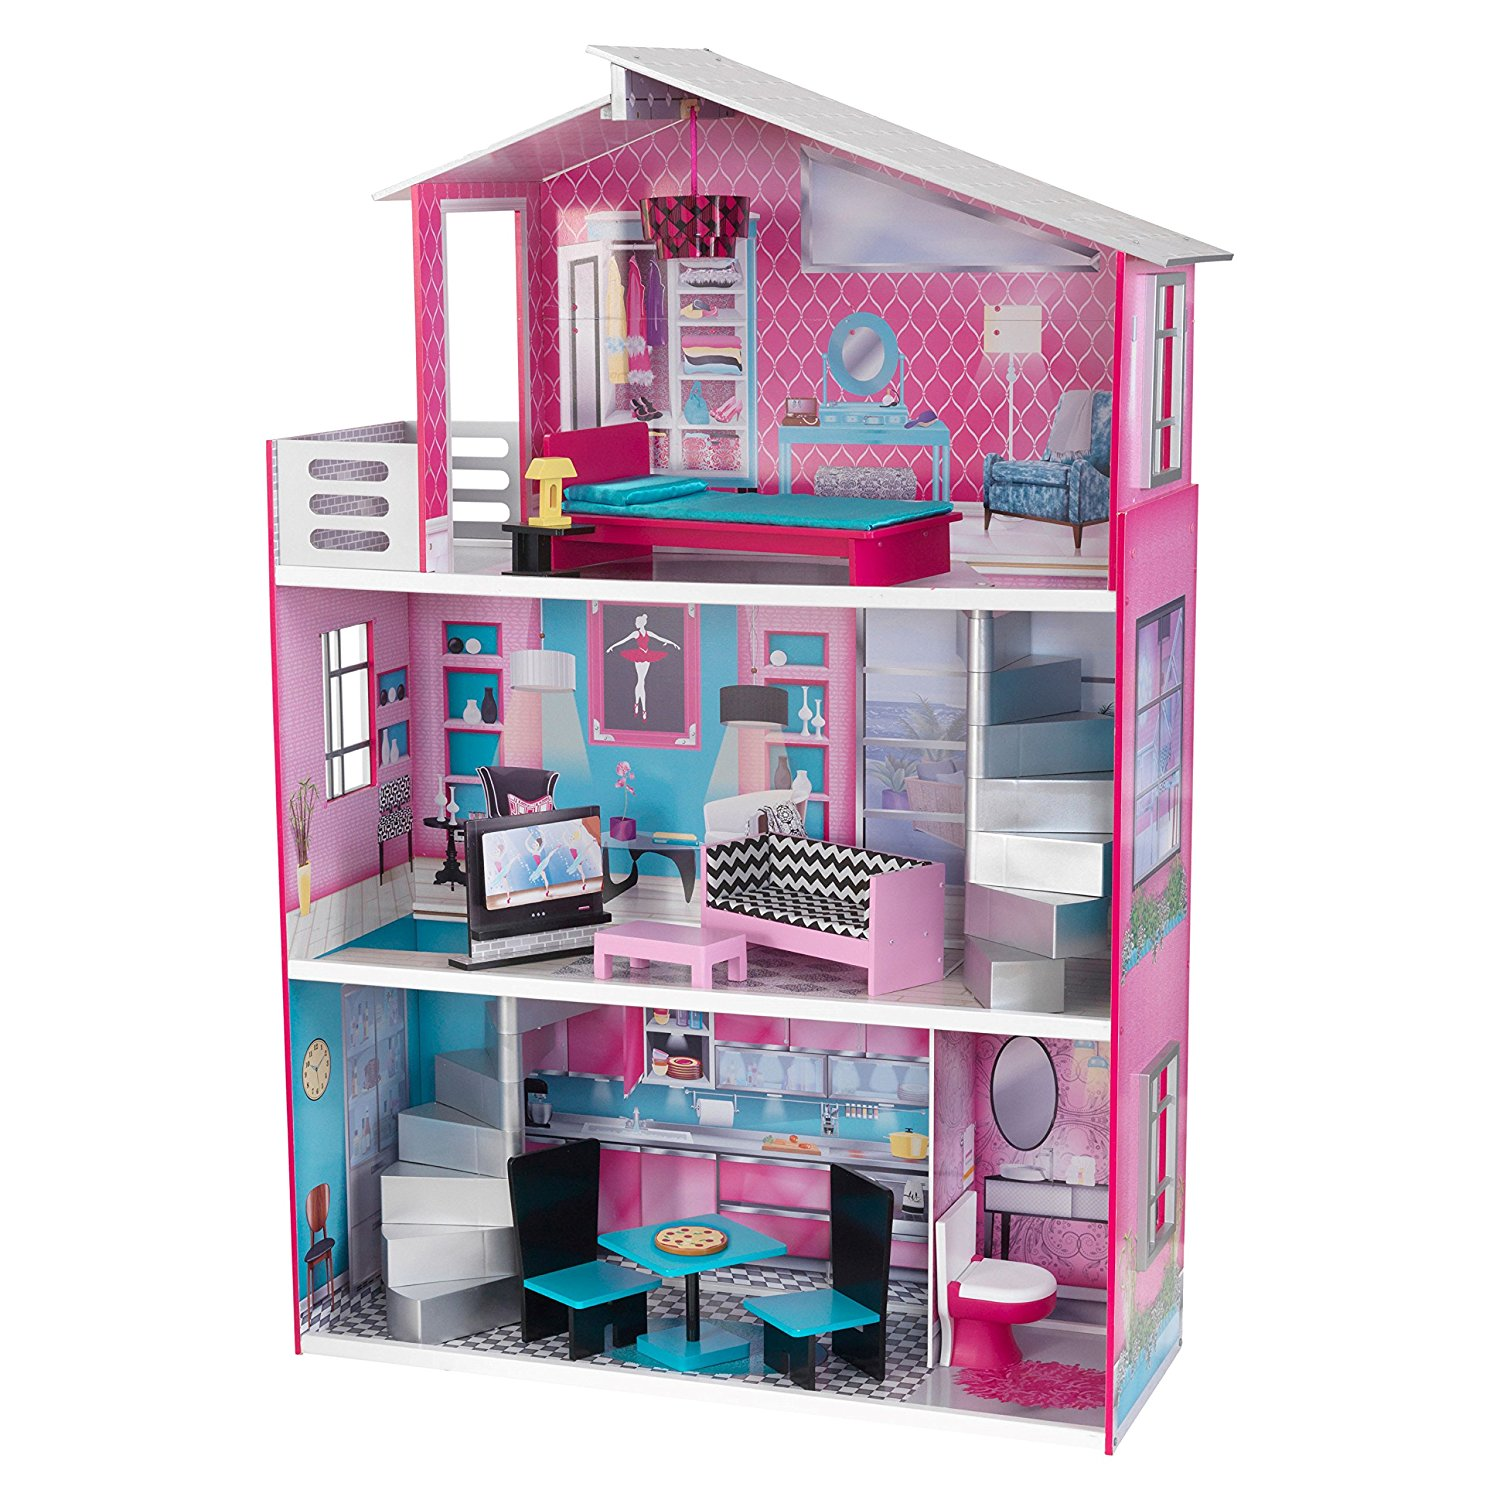 KidKraft Breanna 18-In Dollhouse with 12 accessories included by KidKraft